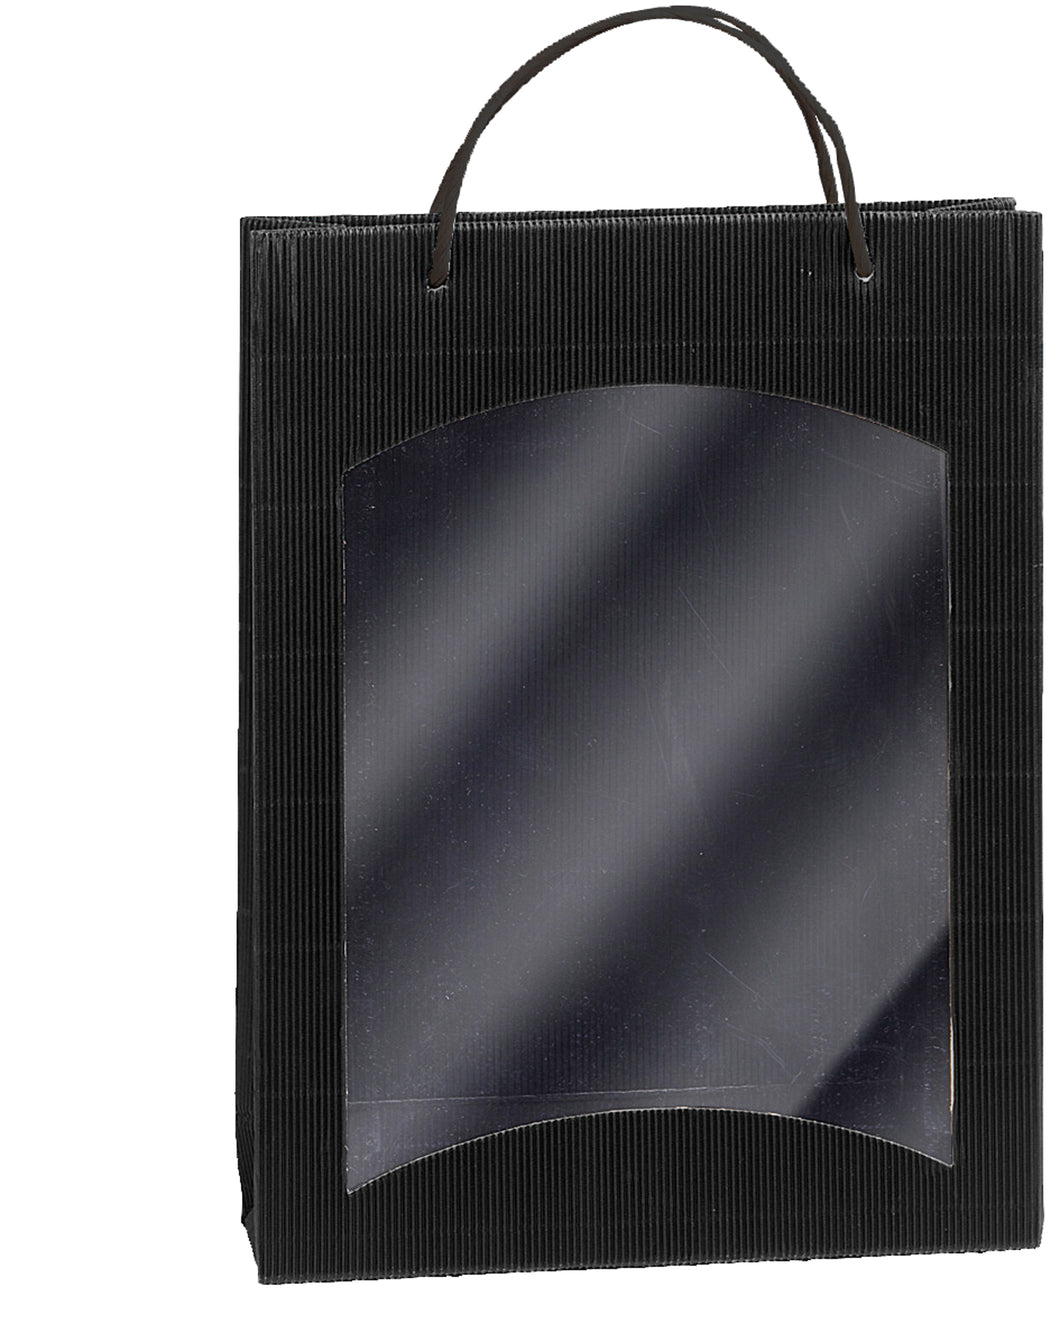 Fluted bag with window for 3 bottles in black (x25)